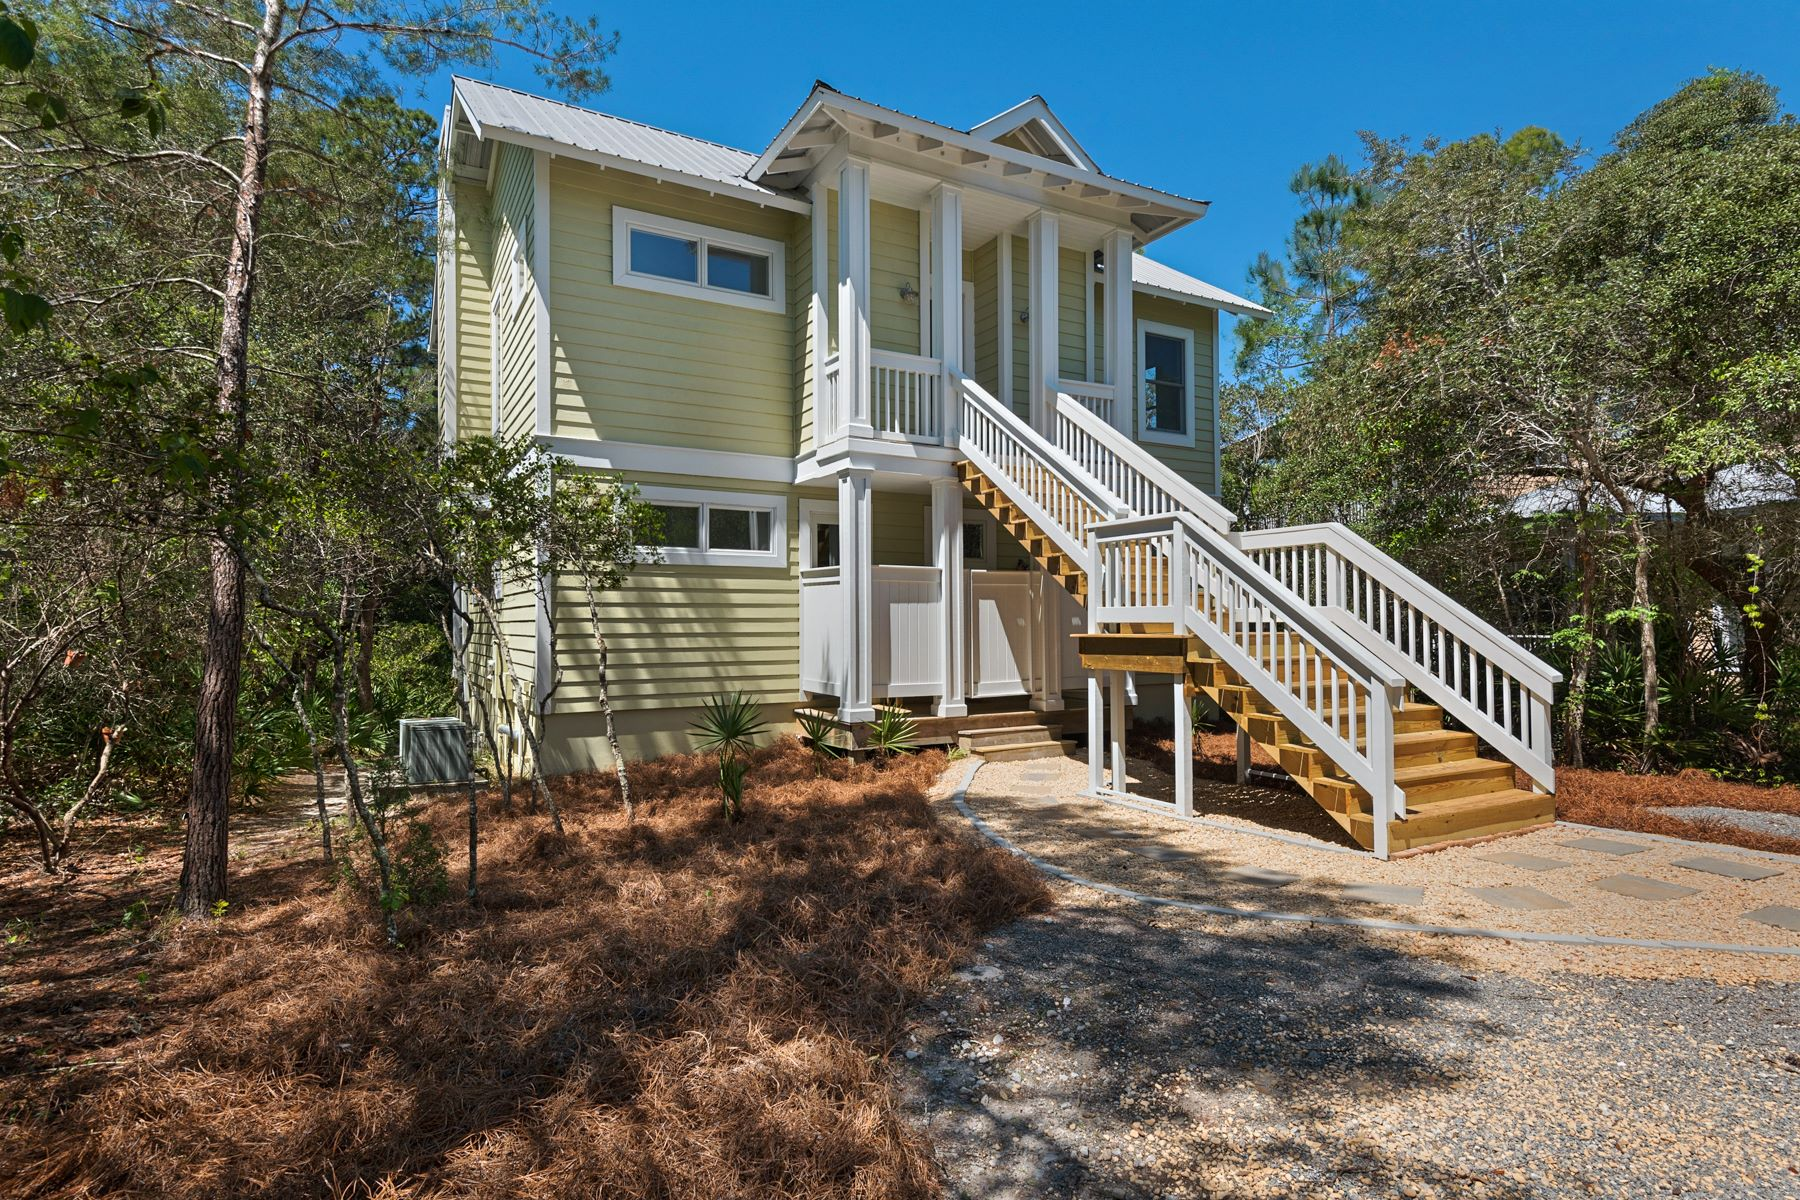 Single Family Home for Sale at SLEEK, MODERN, RENOVATED HOUSE IN PRIVATE LAKEFRONT SETTING 353 Wilderness Way Santa Rosa Beach, Florida, 32459 United States